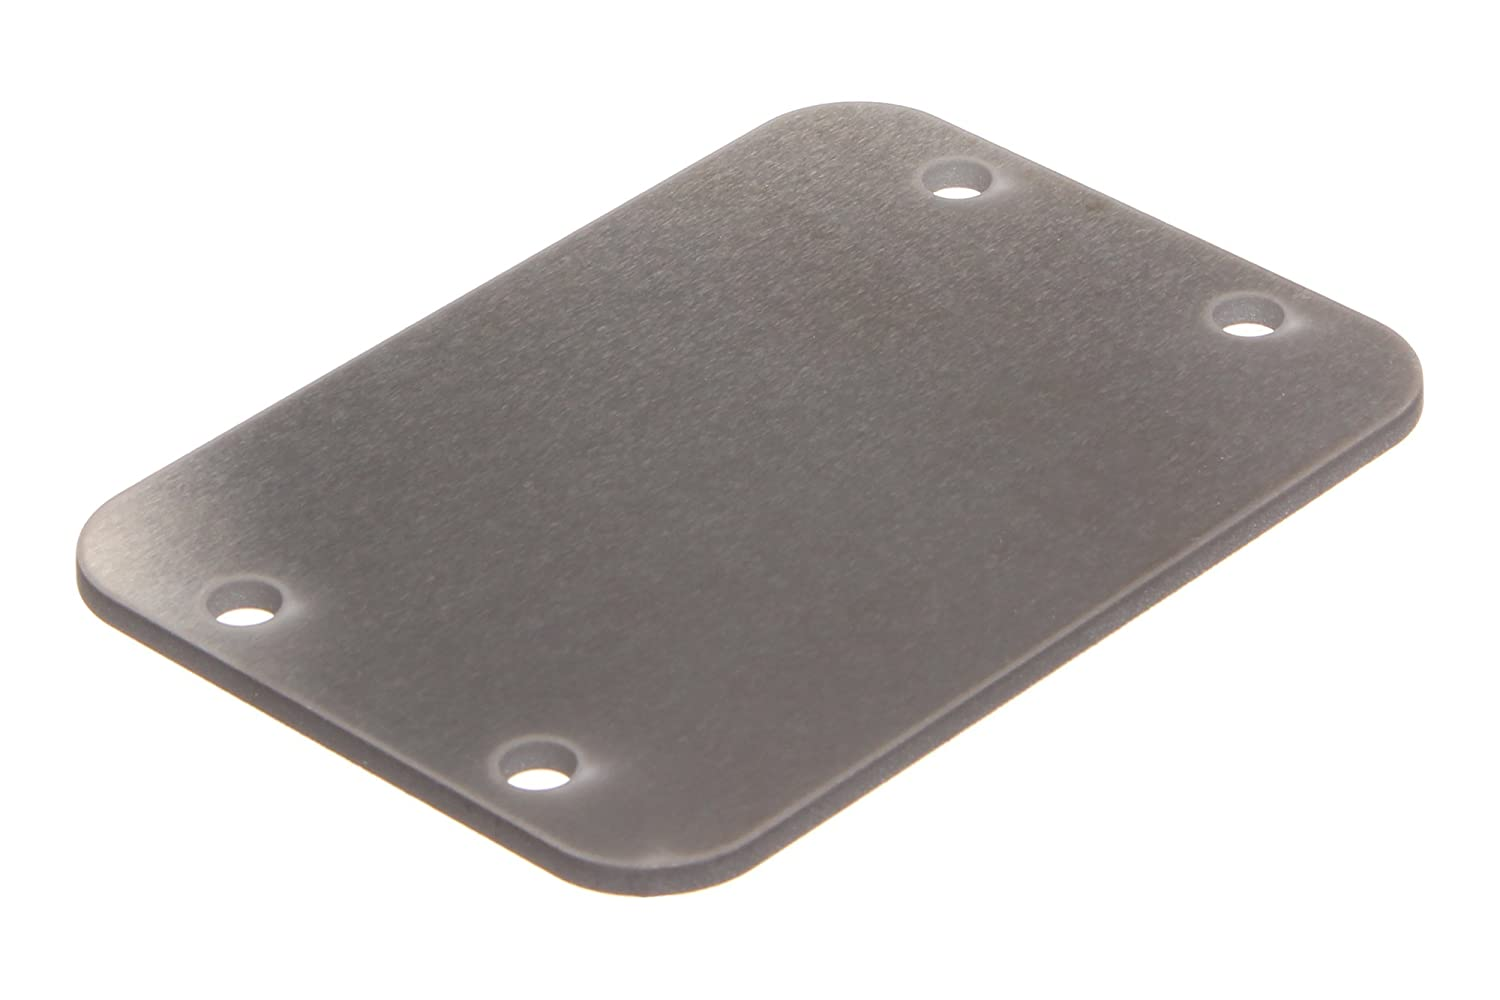 REPLACEMENTKITS.COM Brand Fits Axle Disconnect Block-Off Plate for Dana 30 Differential